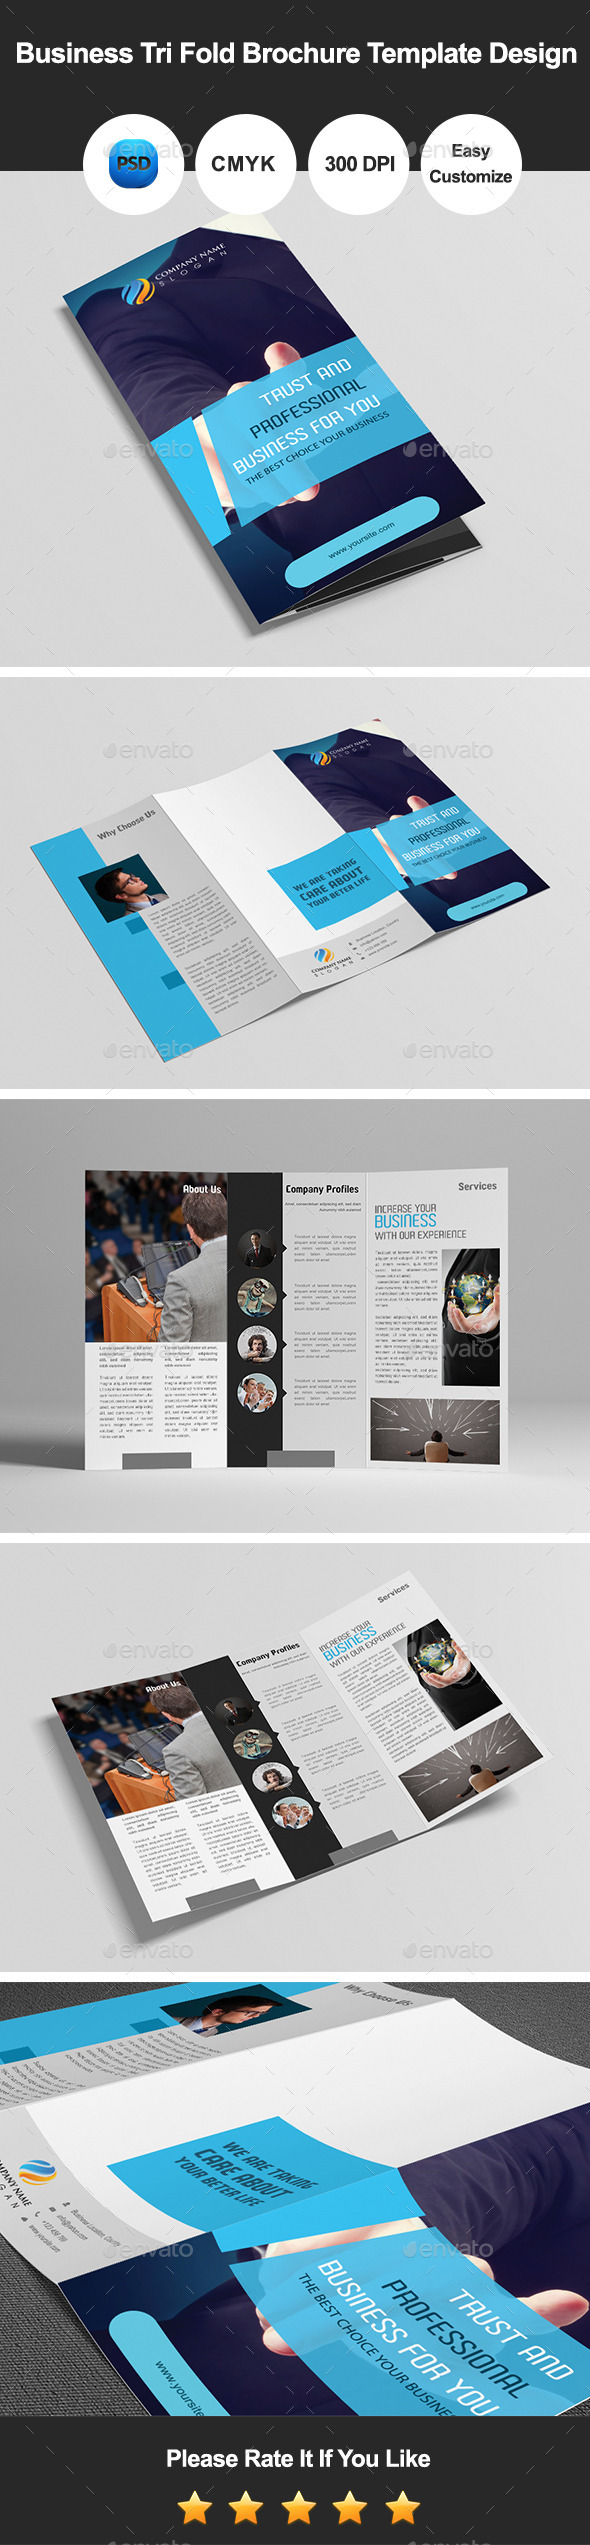 GraphicRiver Business Tri Fold Brochure Template Design 9726306